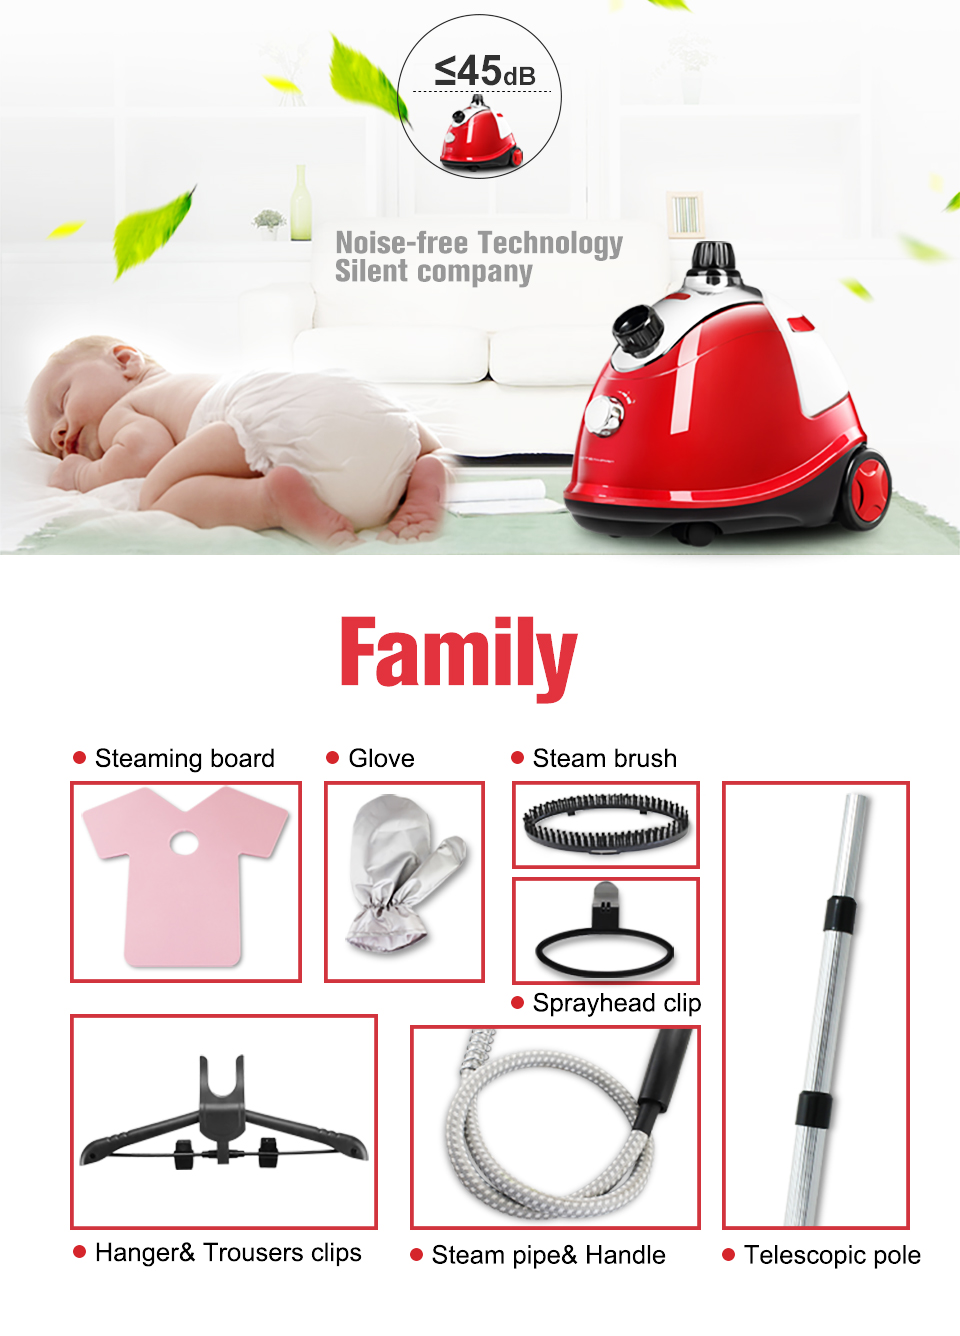 1800W TV shopping high quality industrial steam iron laundry appliance fabric garment steamer sterilizer home steamers